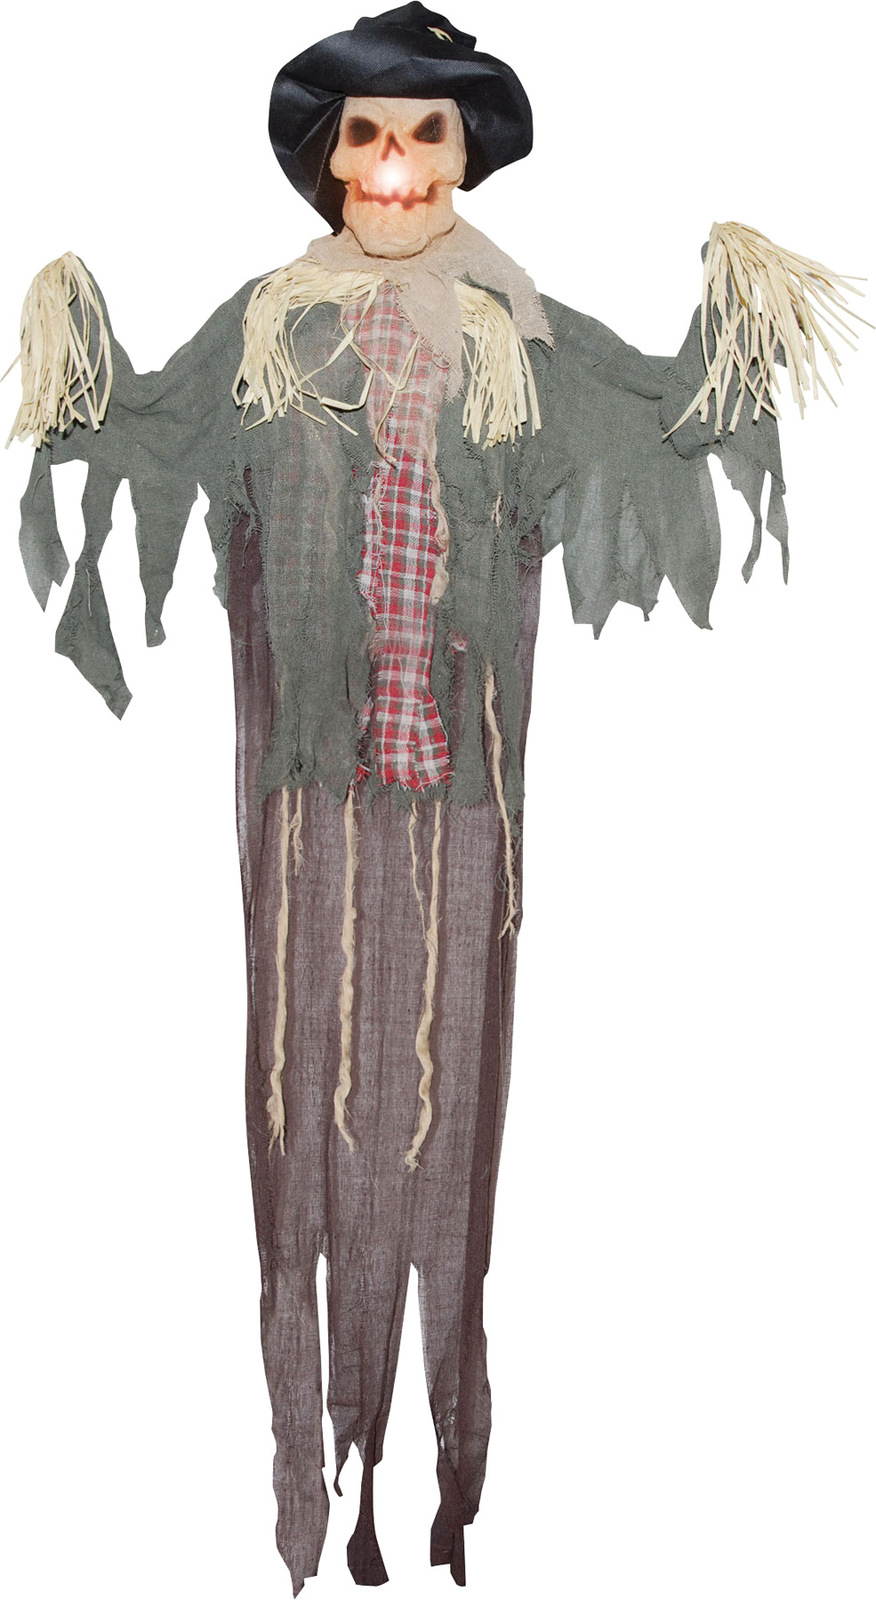 Hanging Scarecrow 6 Ft Halloween Prop Haunted House Lightup Yard Decor Display